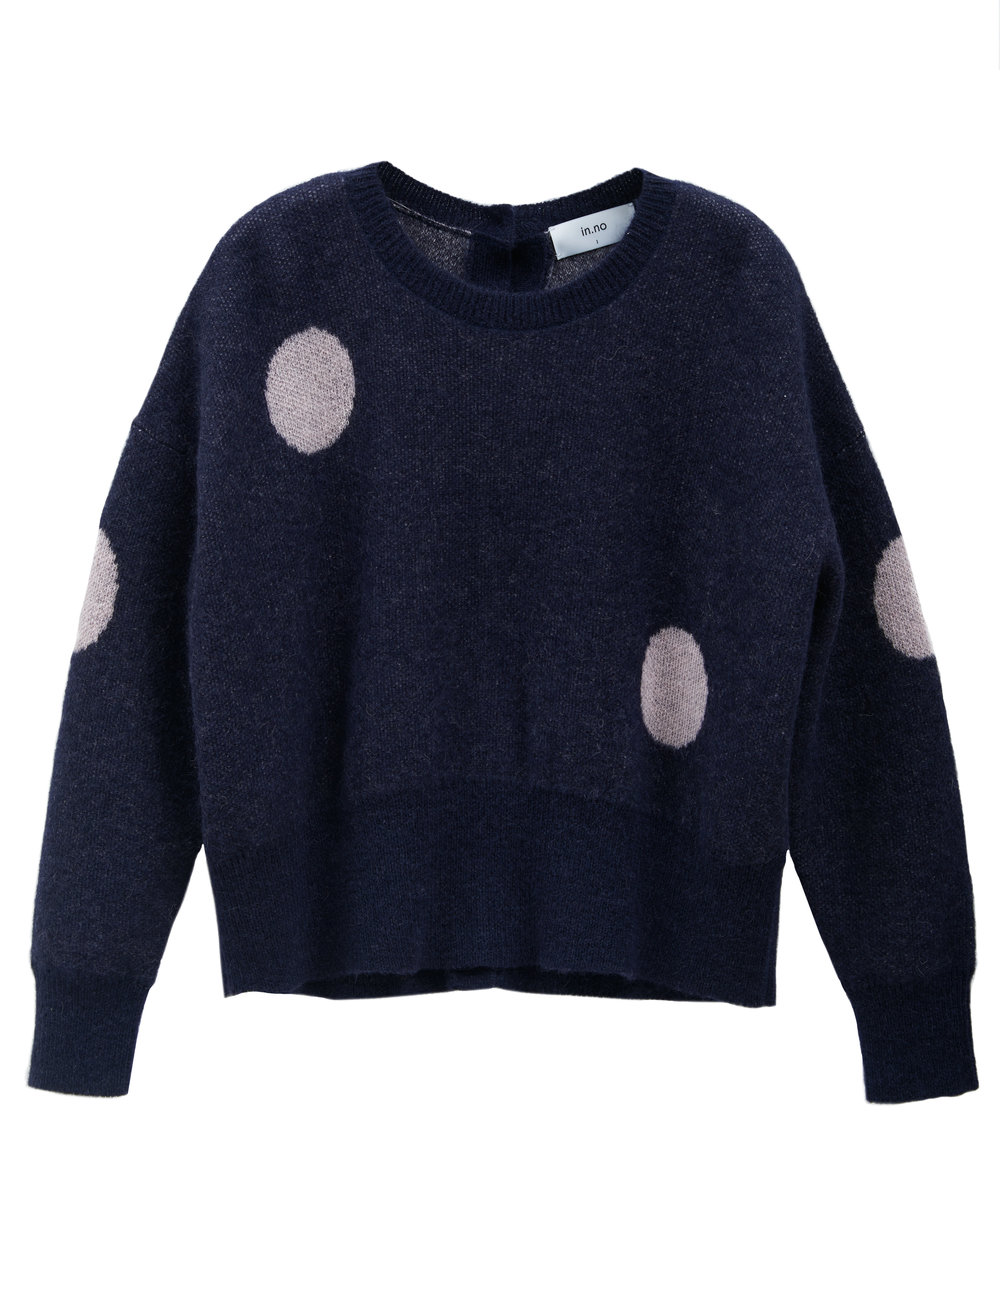 in.no Edition 1.0 navy pink dot jumper